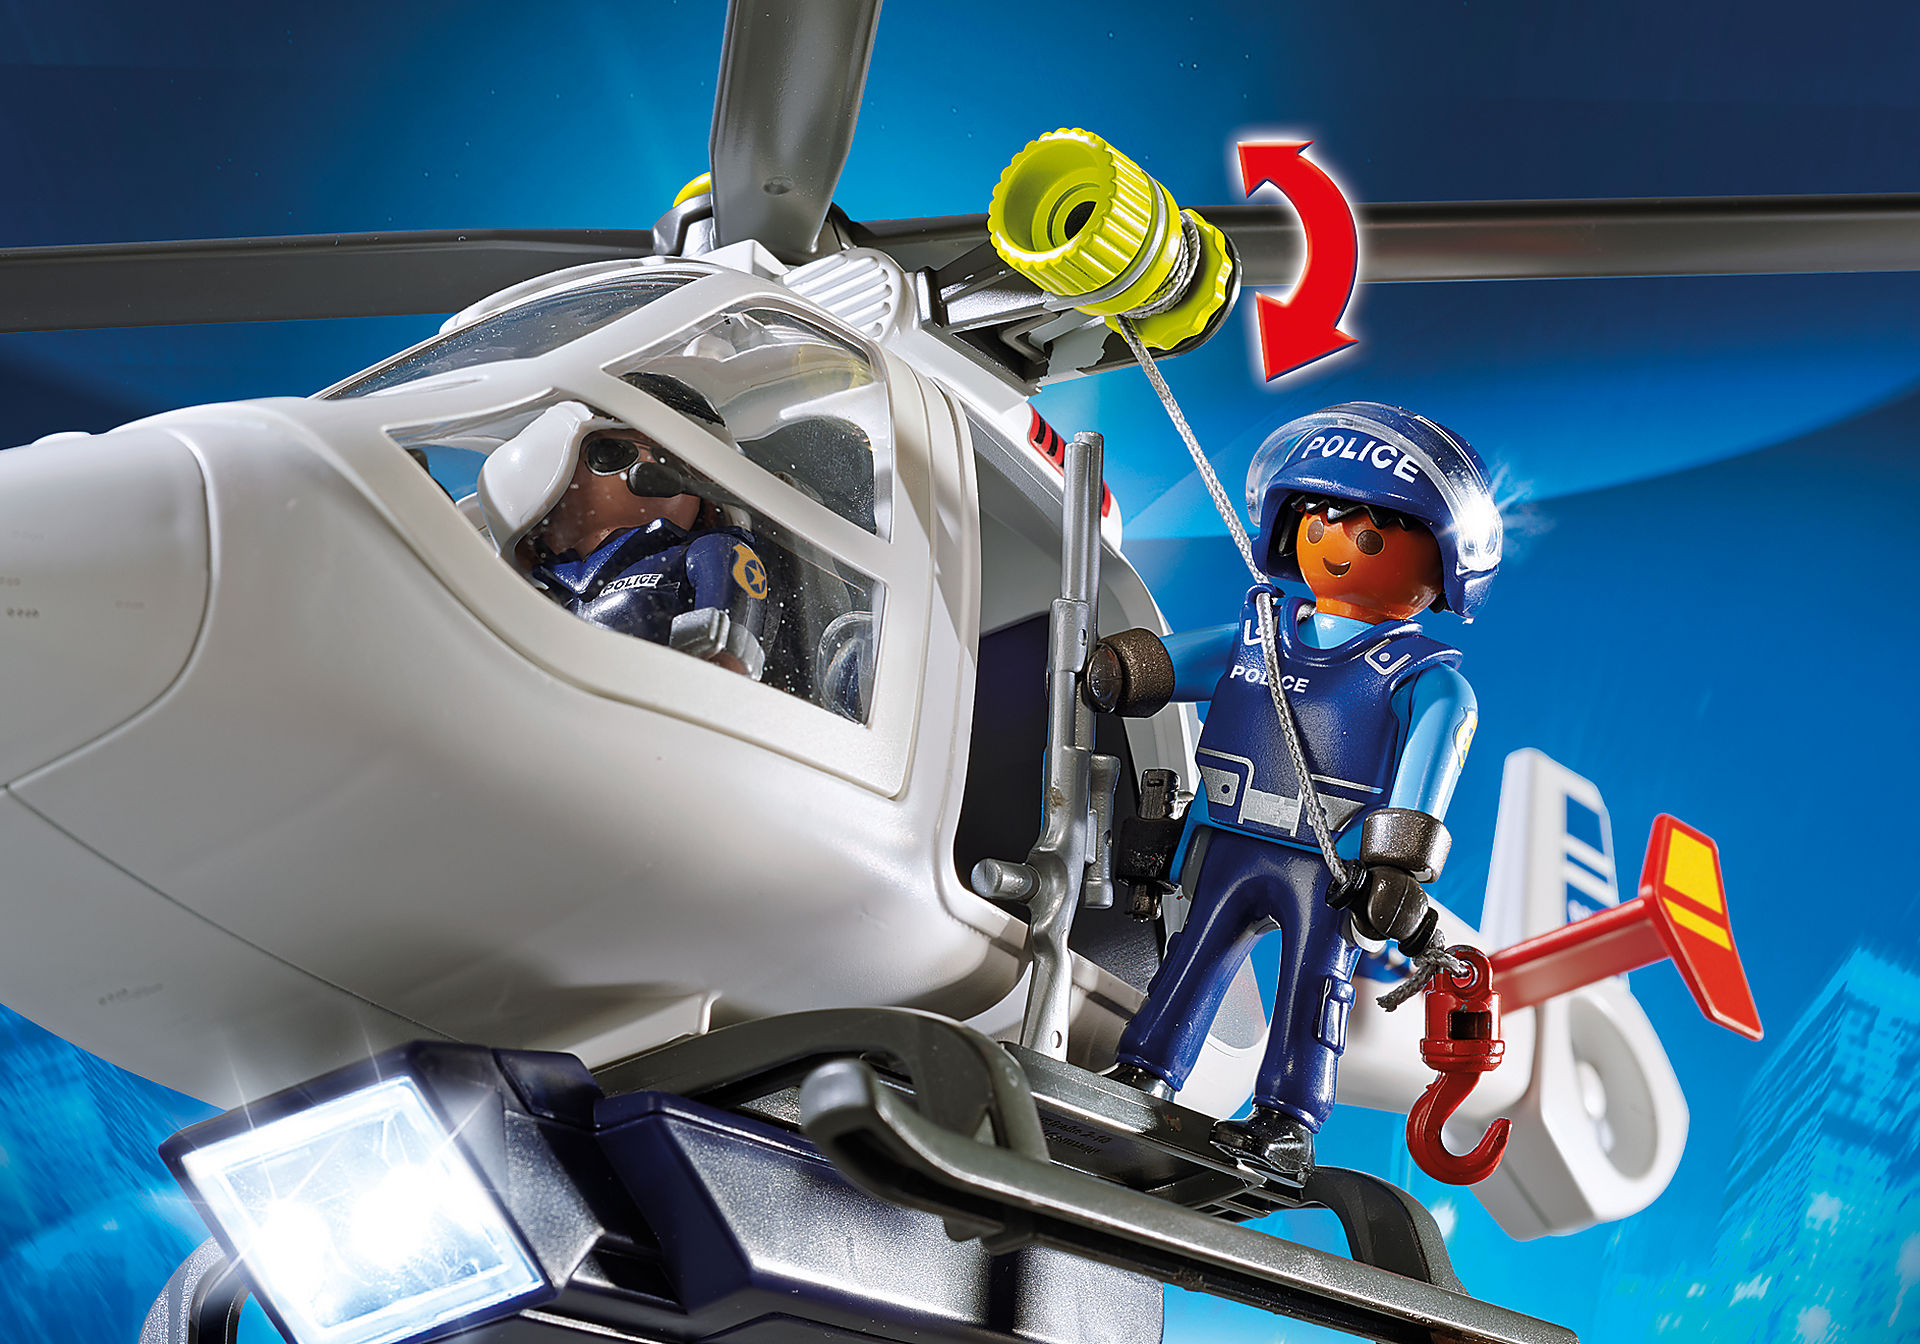 http://media.playmobil.com/i/playmobil/6921_product_extra2/Int. Polizei-Helikopter mit LED-Suchscheinwerfer